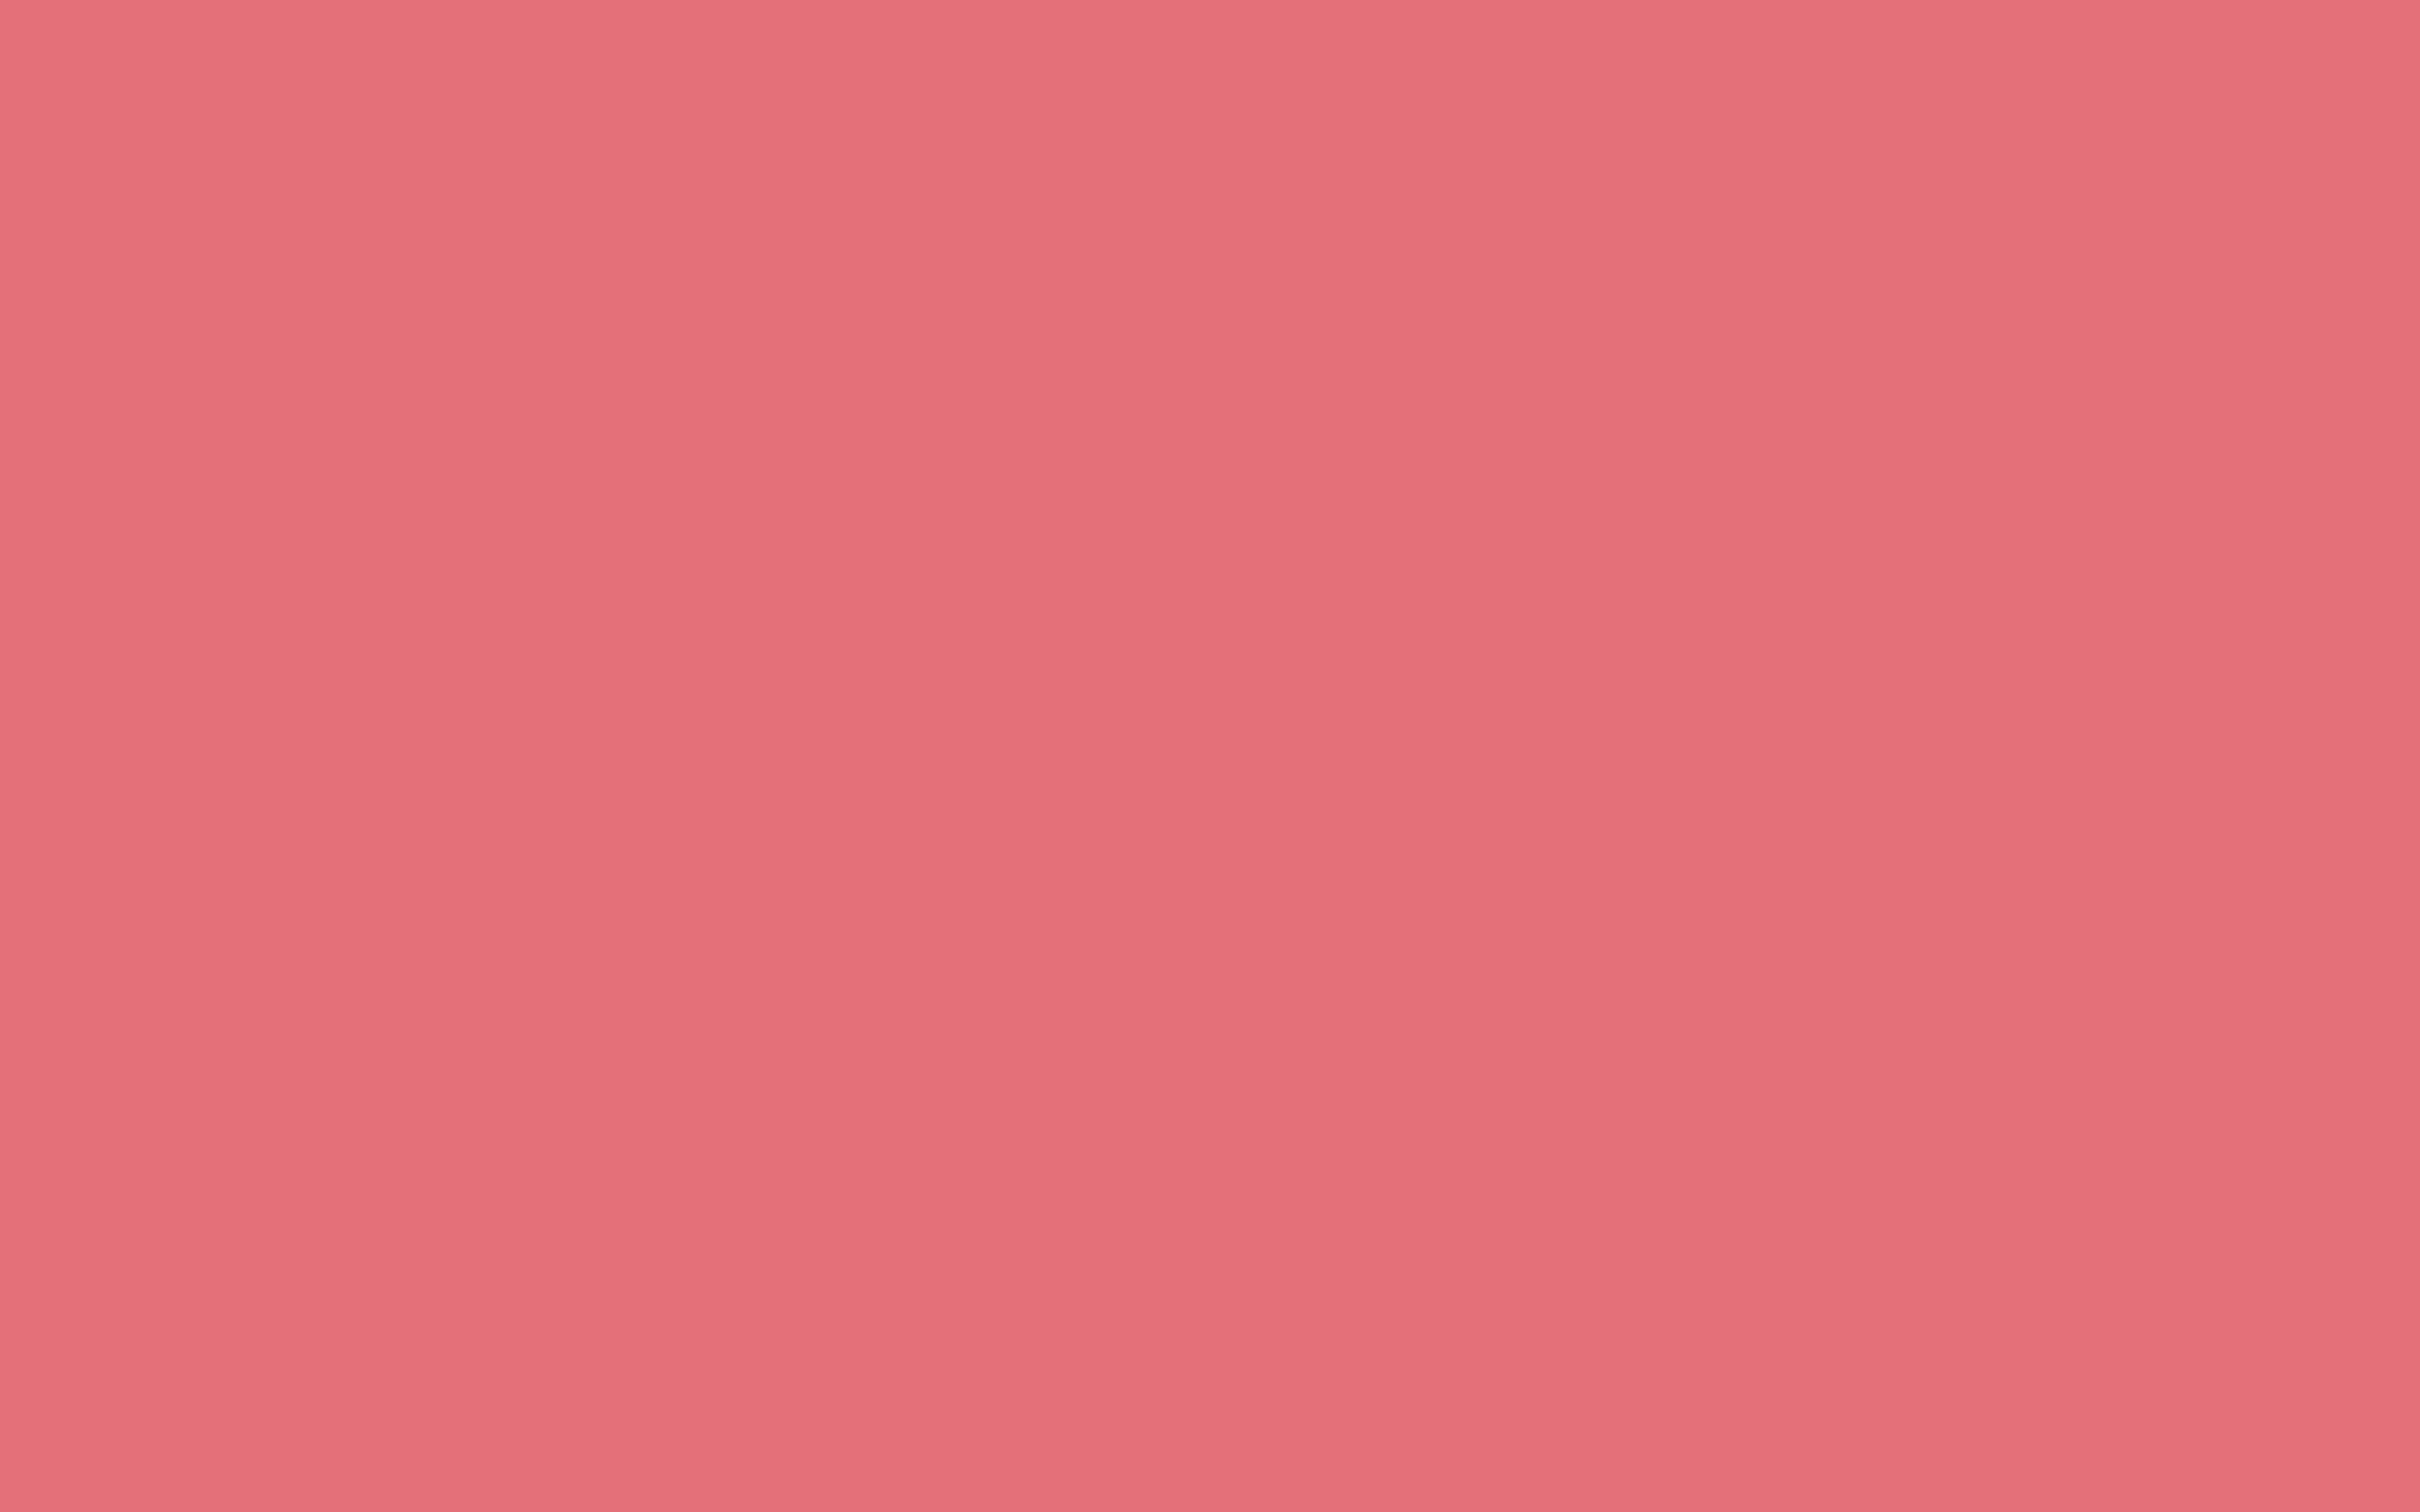 2560x1600 Tango Pink Solid Color Background